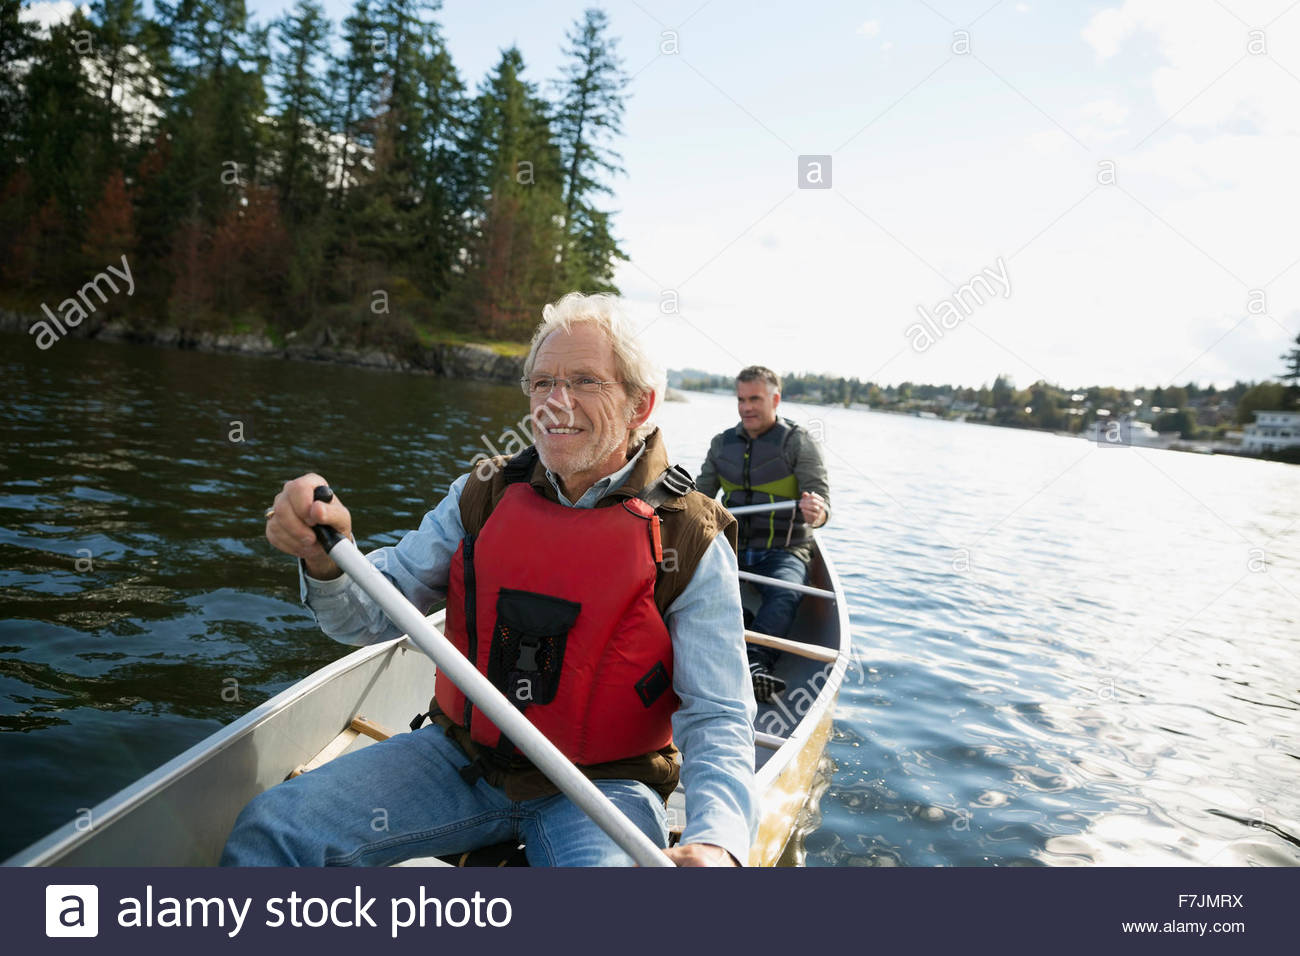 Father and son canoeing on lake - Stock Image